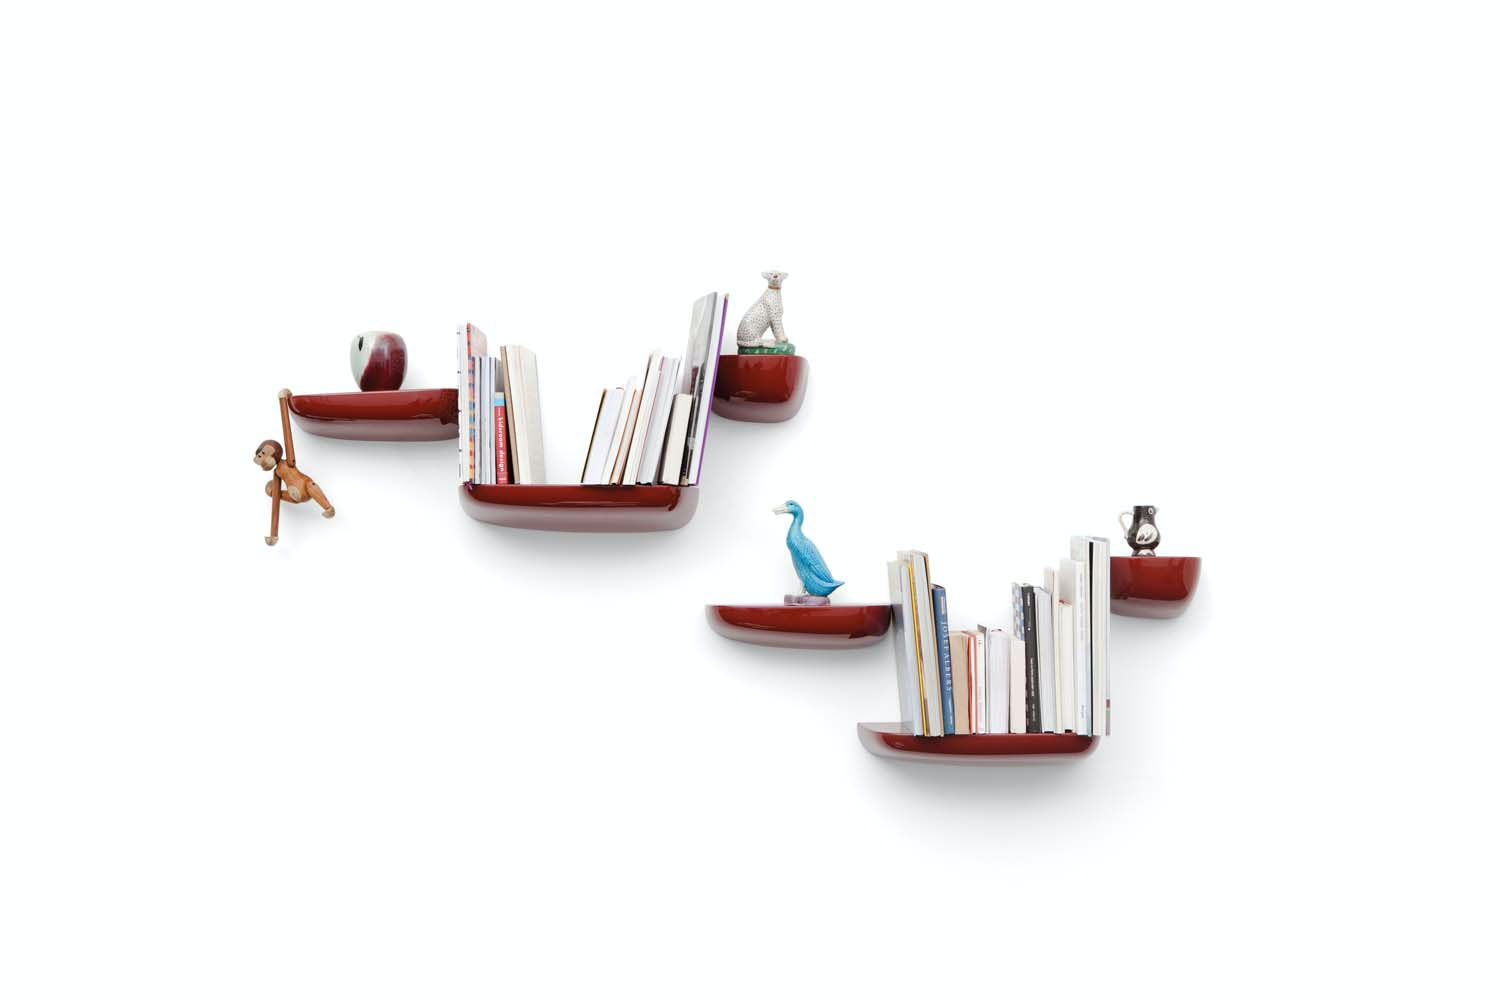 Corniches Large Wall Mounted Storage by Ronan & Erwan Bouroullec for Vitra